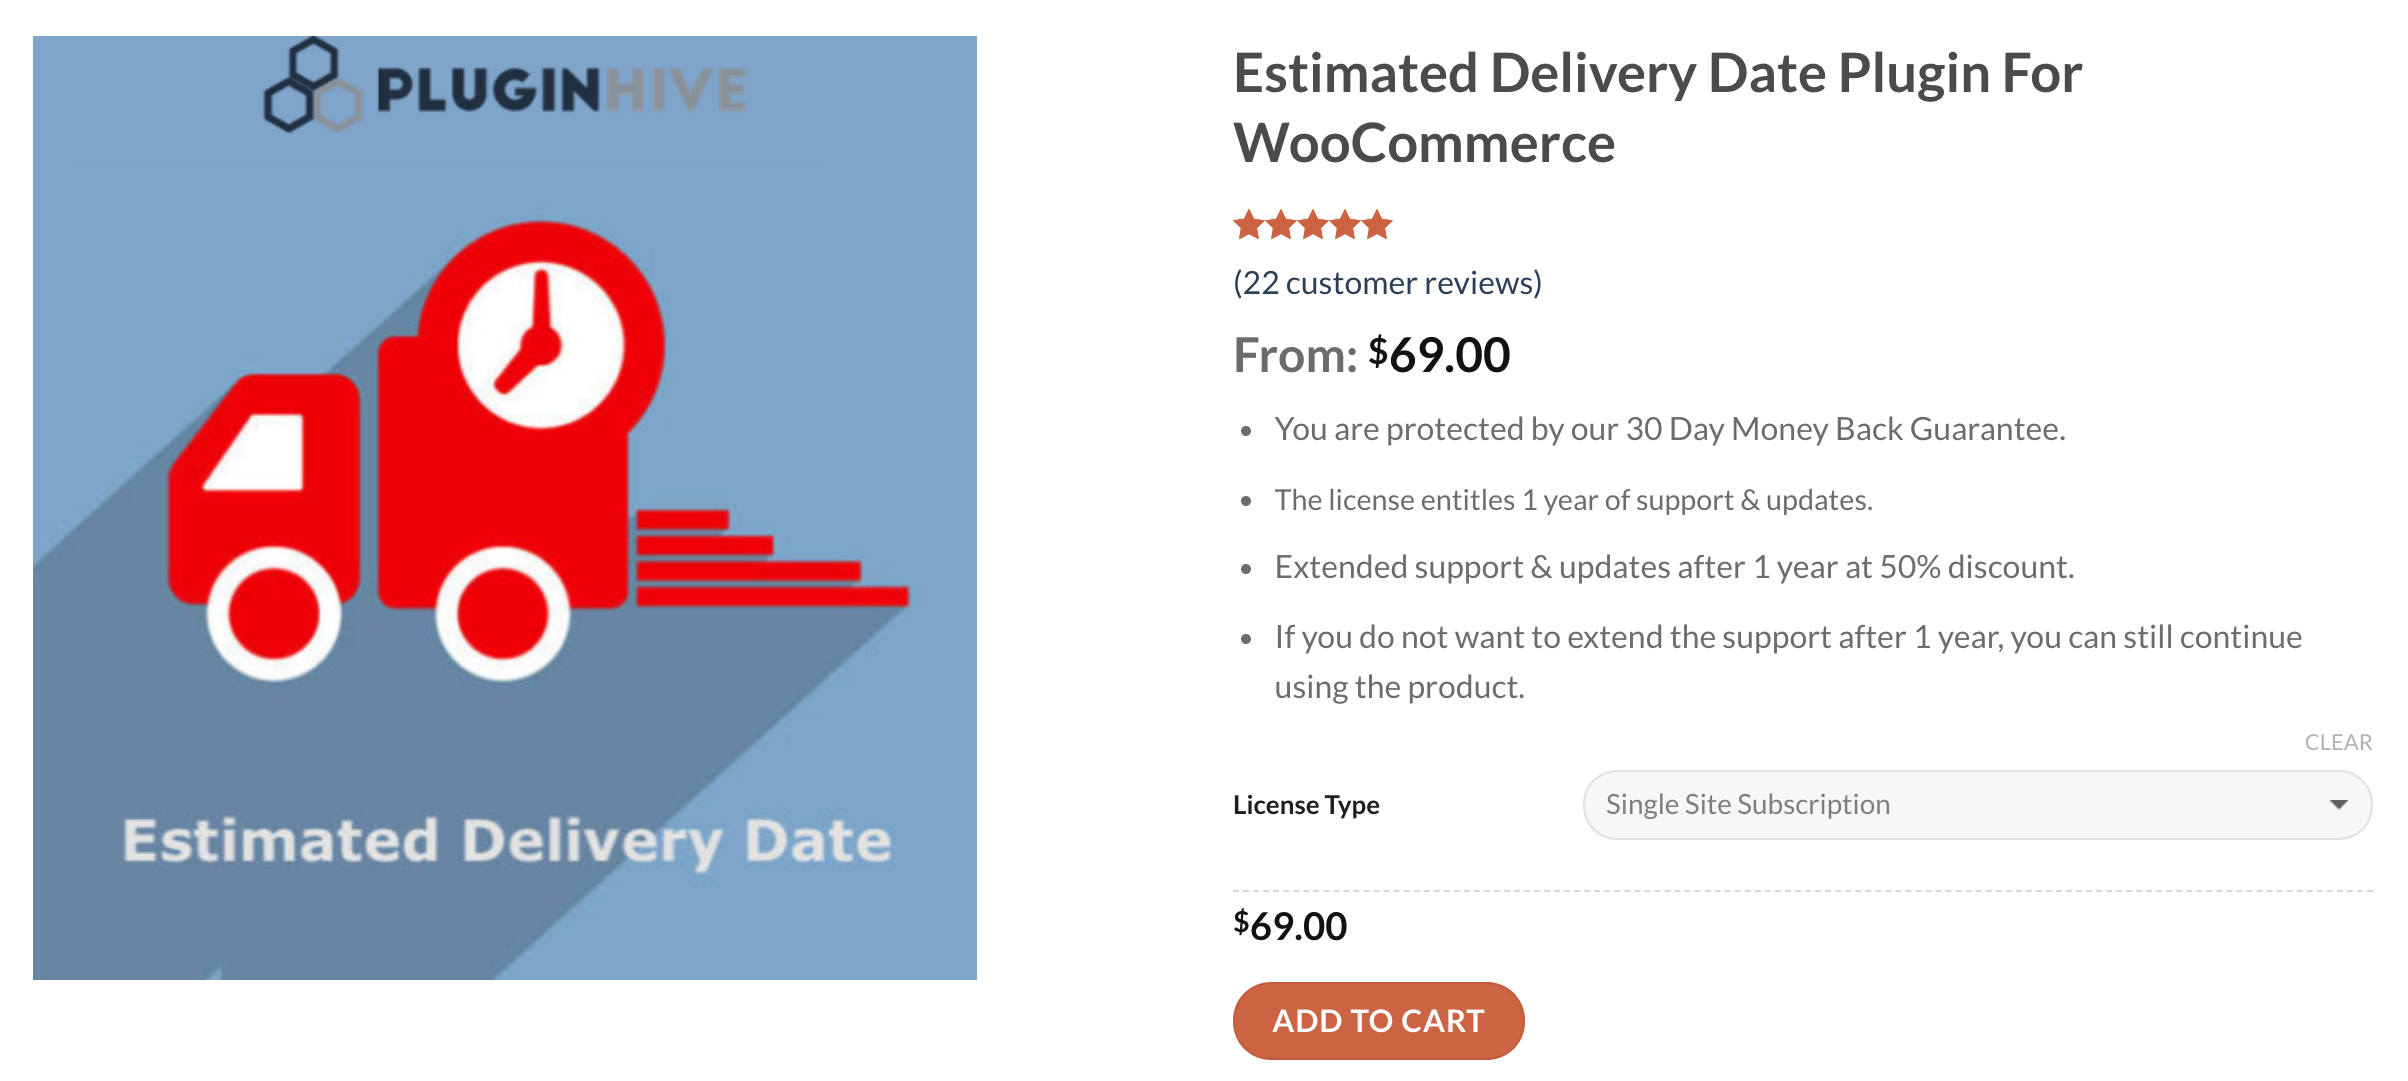 woocommerce estimated delivery date